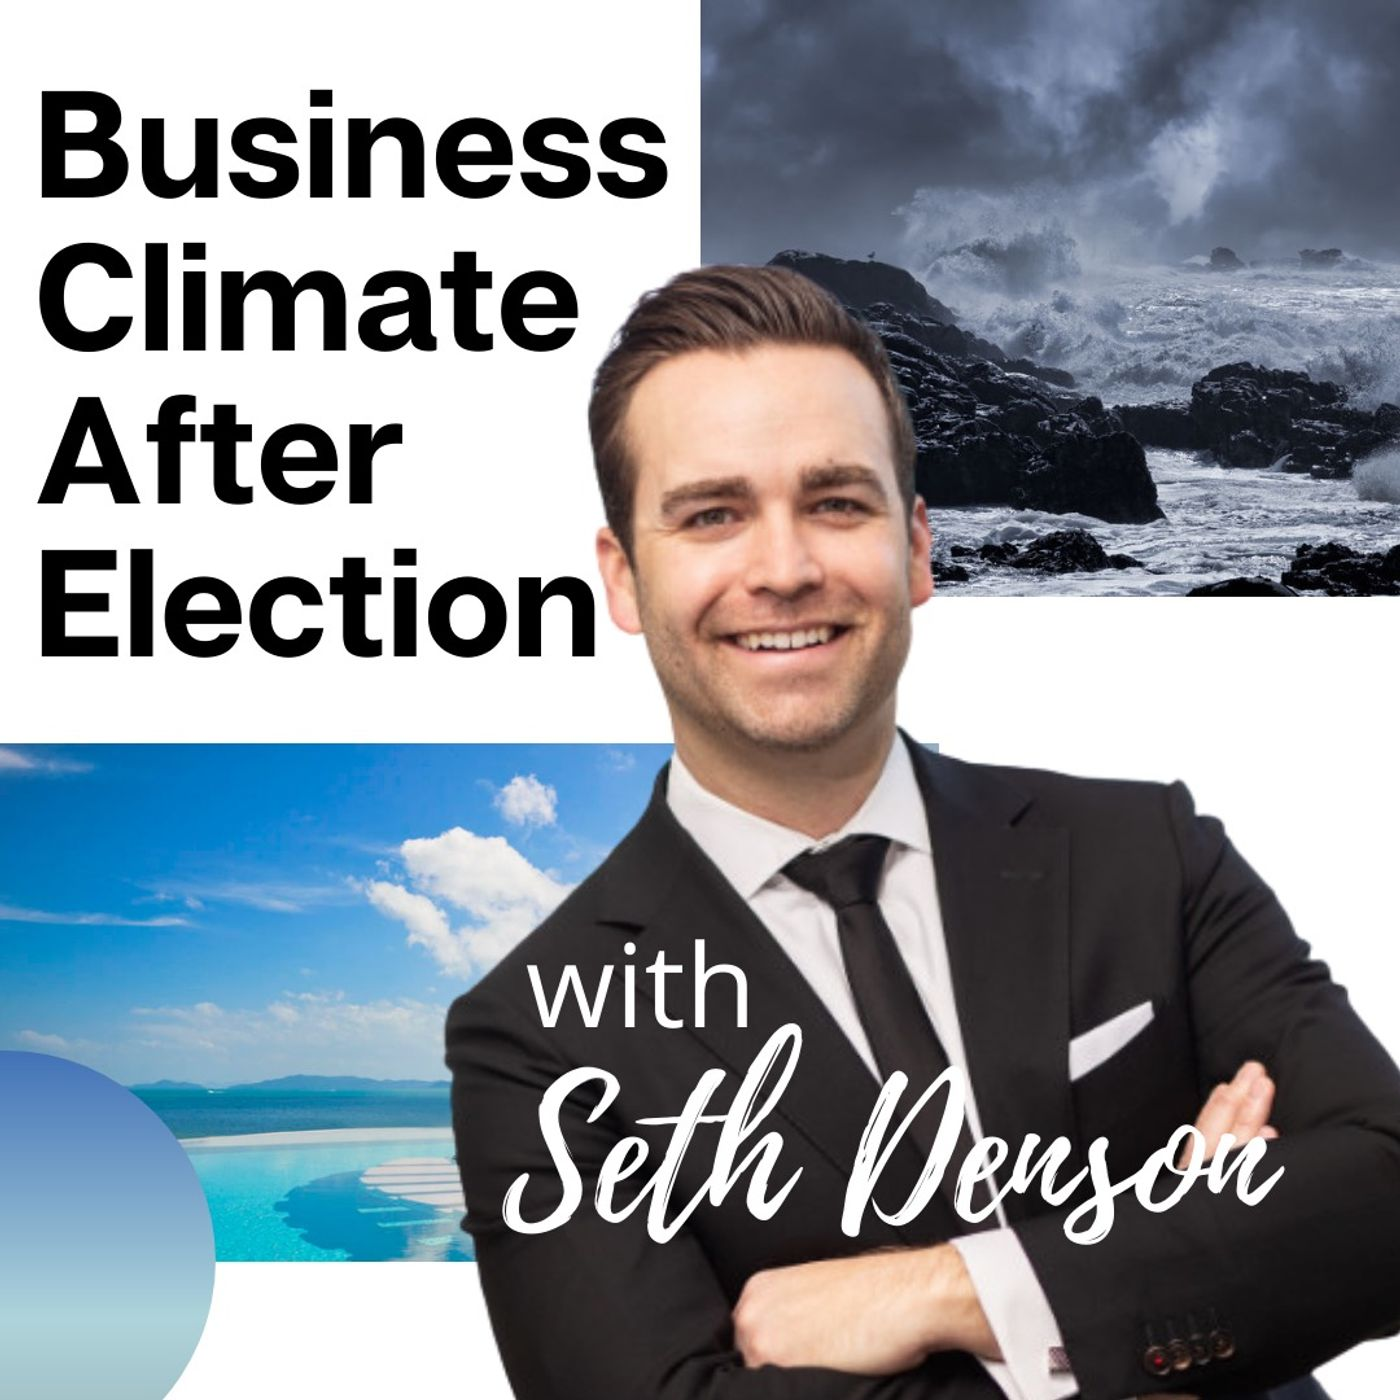 Business Climate After Election with Seth Denson